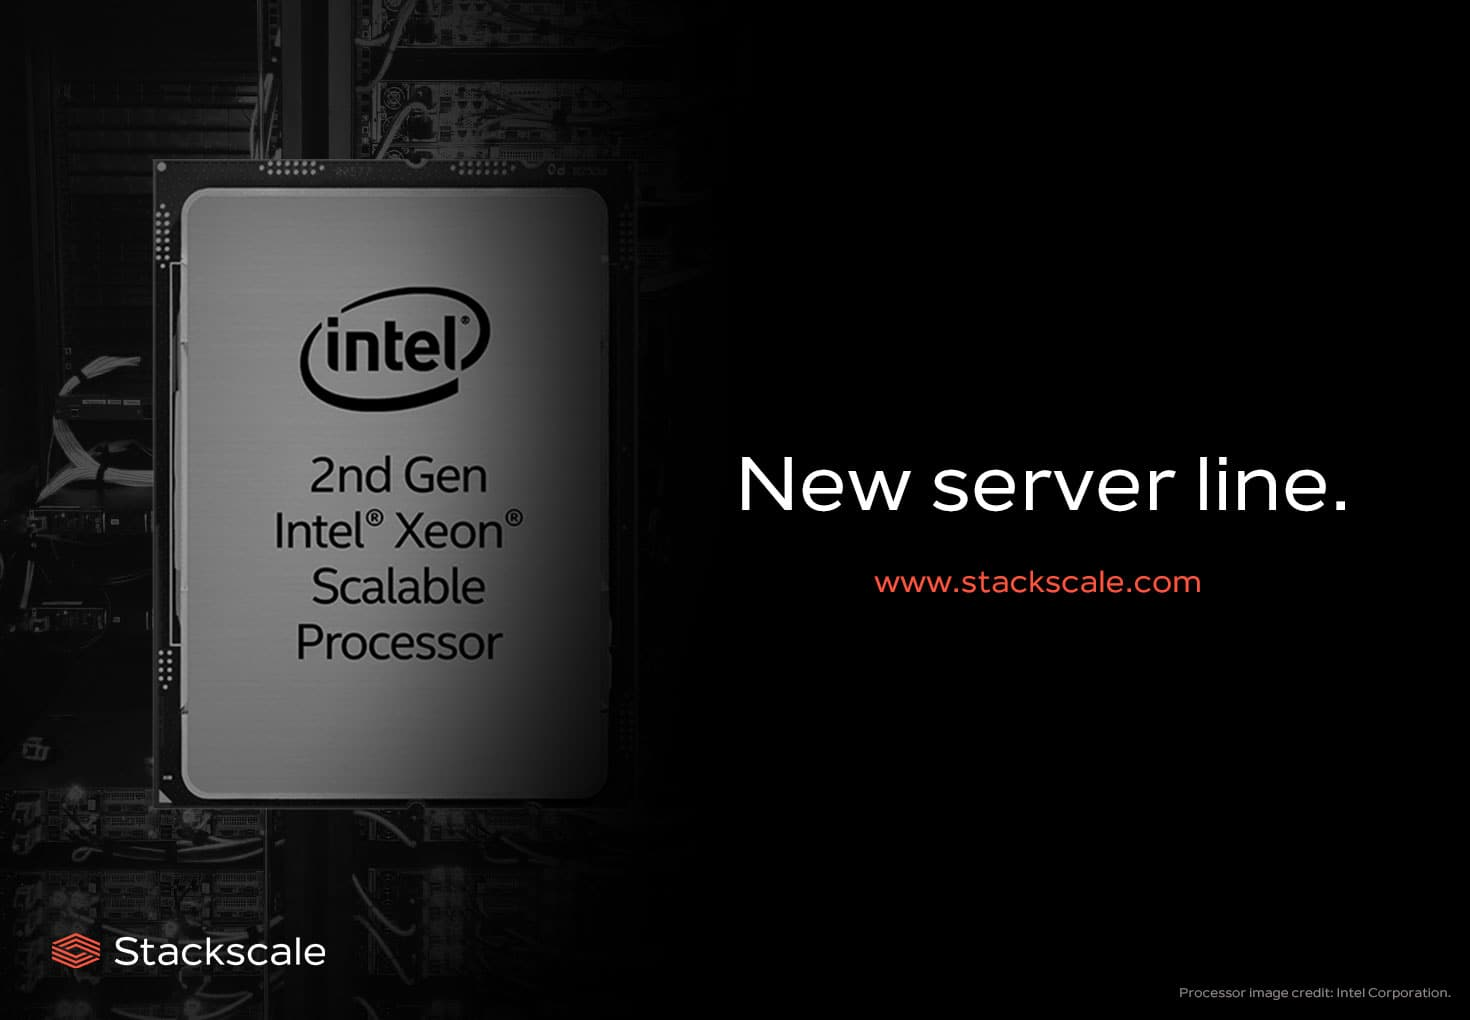 New nodes lines of Stackscale, with 2nd generation Intel Xeon Scalable processors